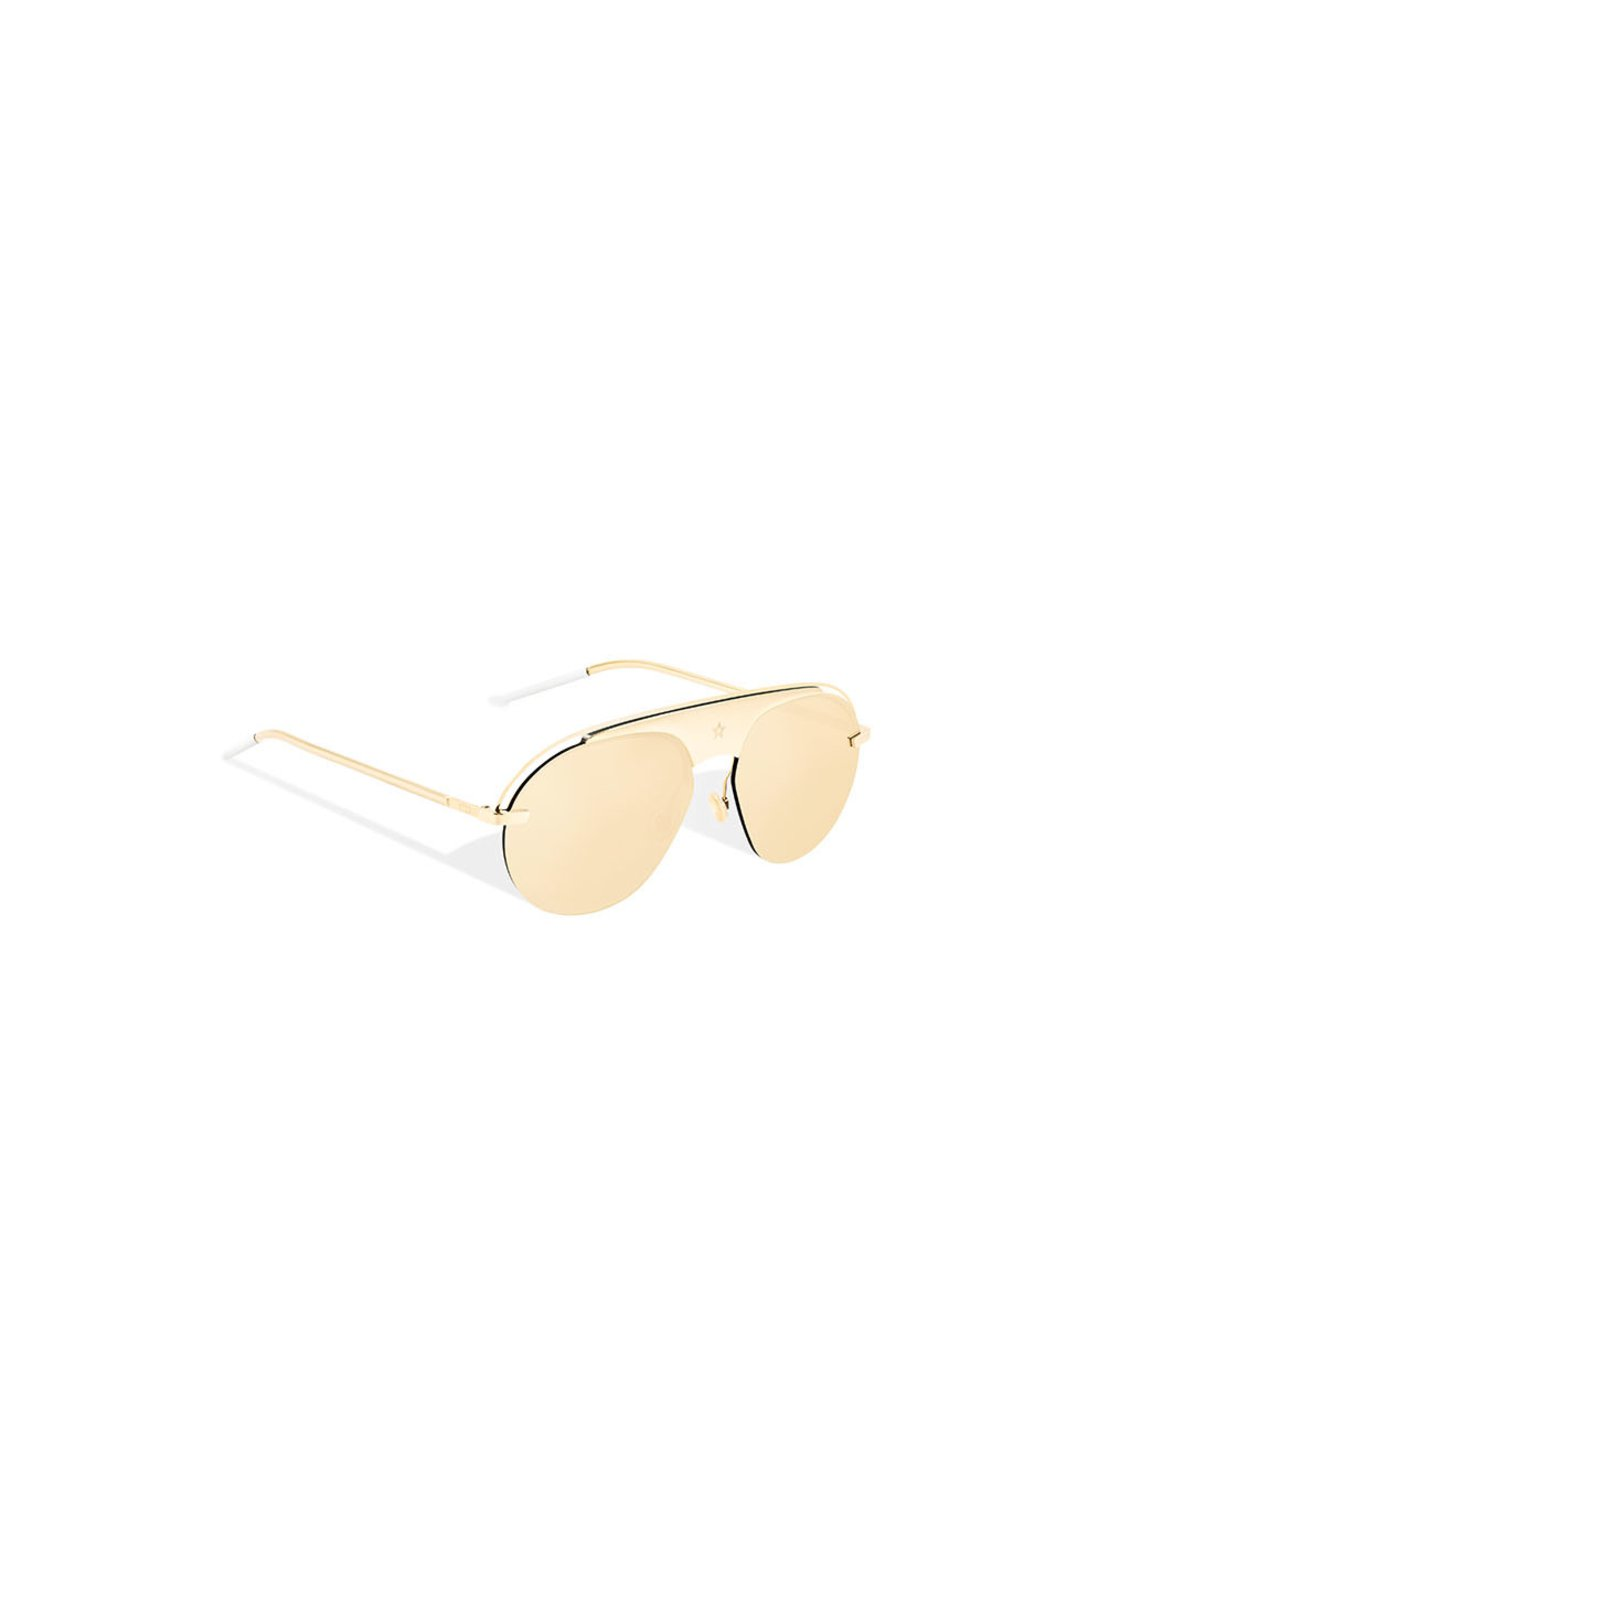 1c0d639bb85 Facebook · Pin This. Christian Dior Dior revolution 2 Sunglasses Metal  Golden ref.50189